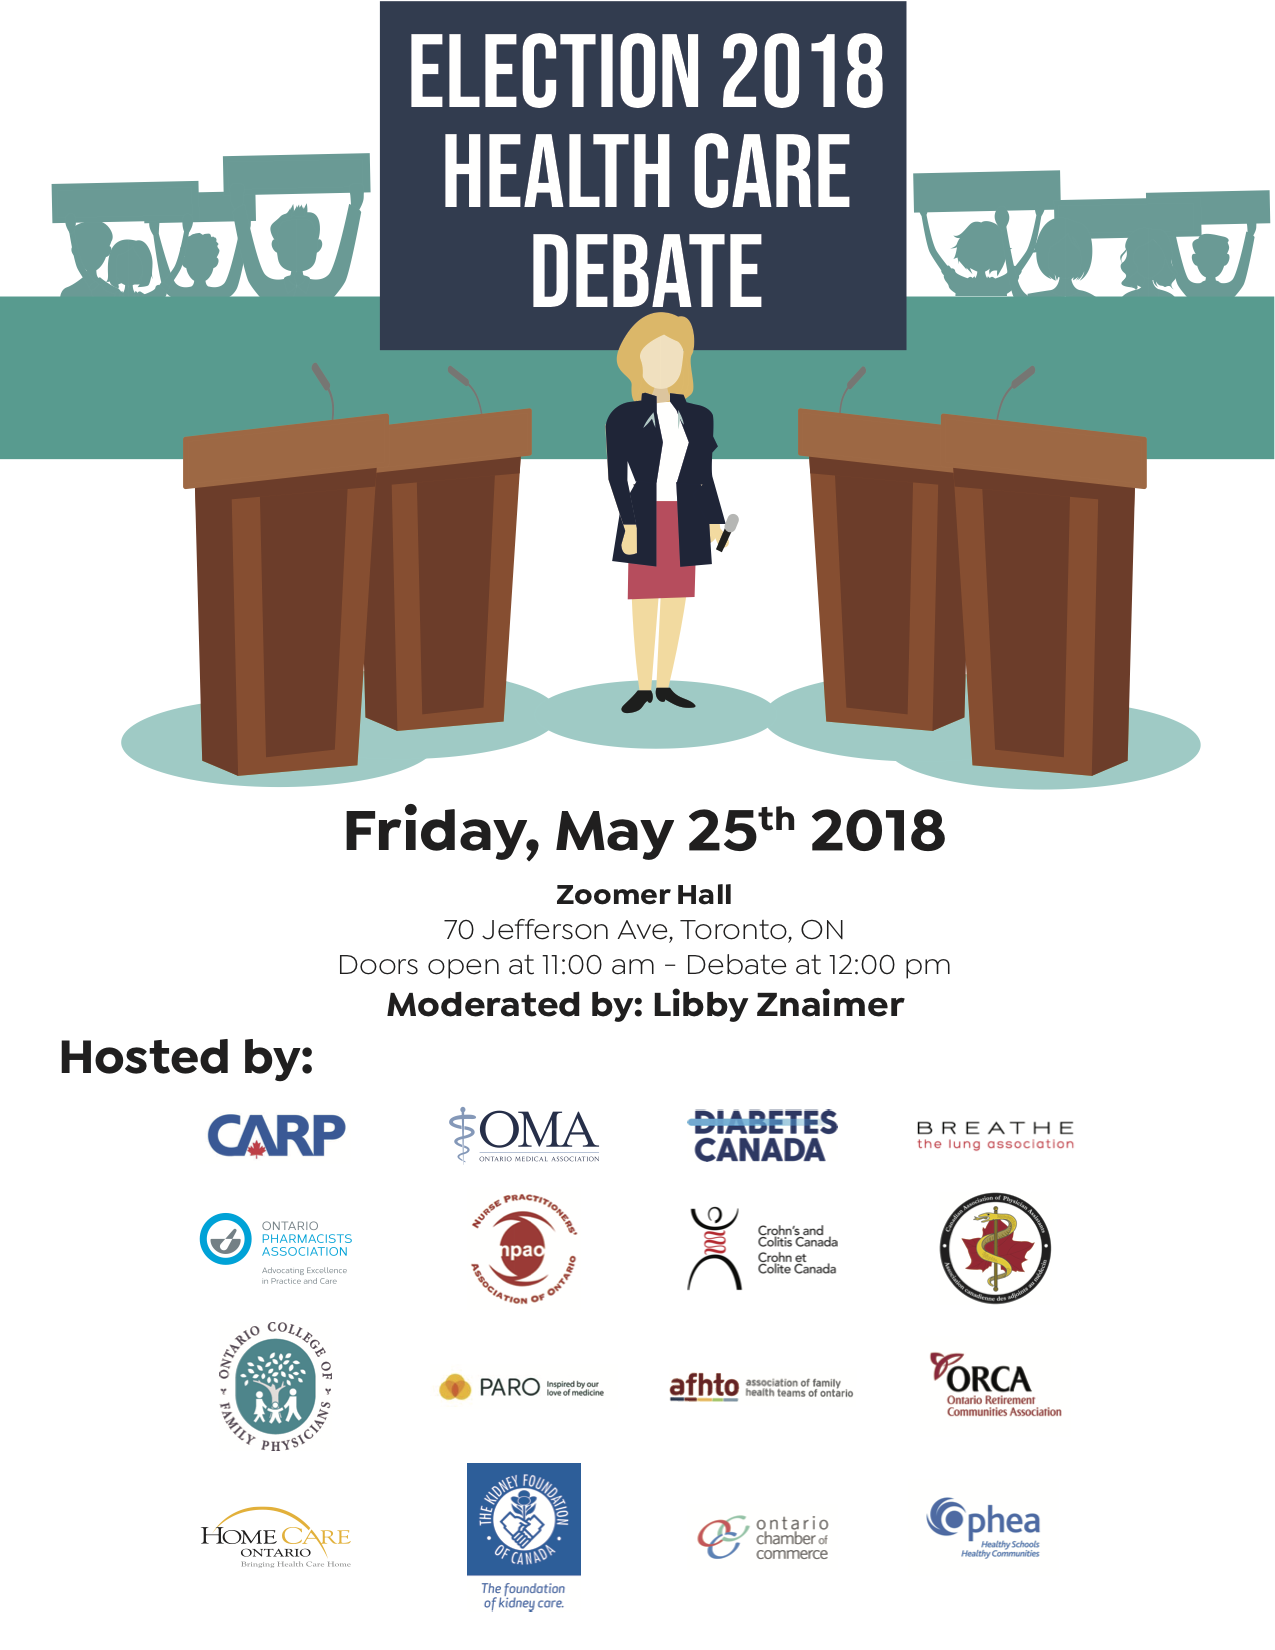 Election 2018 Health Care Debate - Friday, May 25th 2018